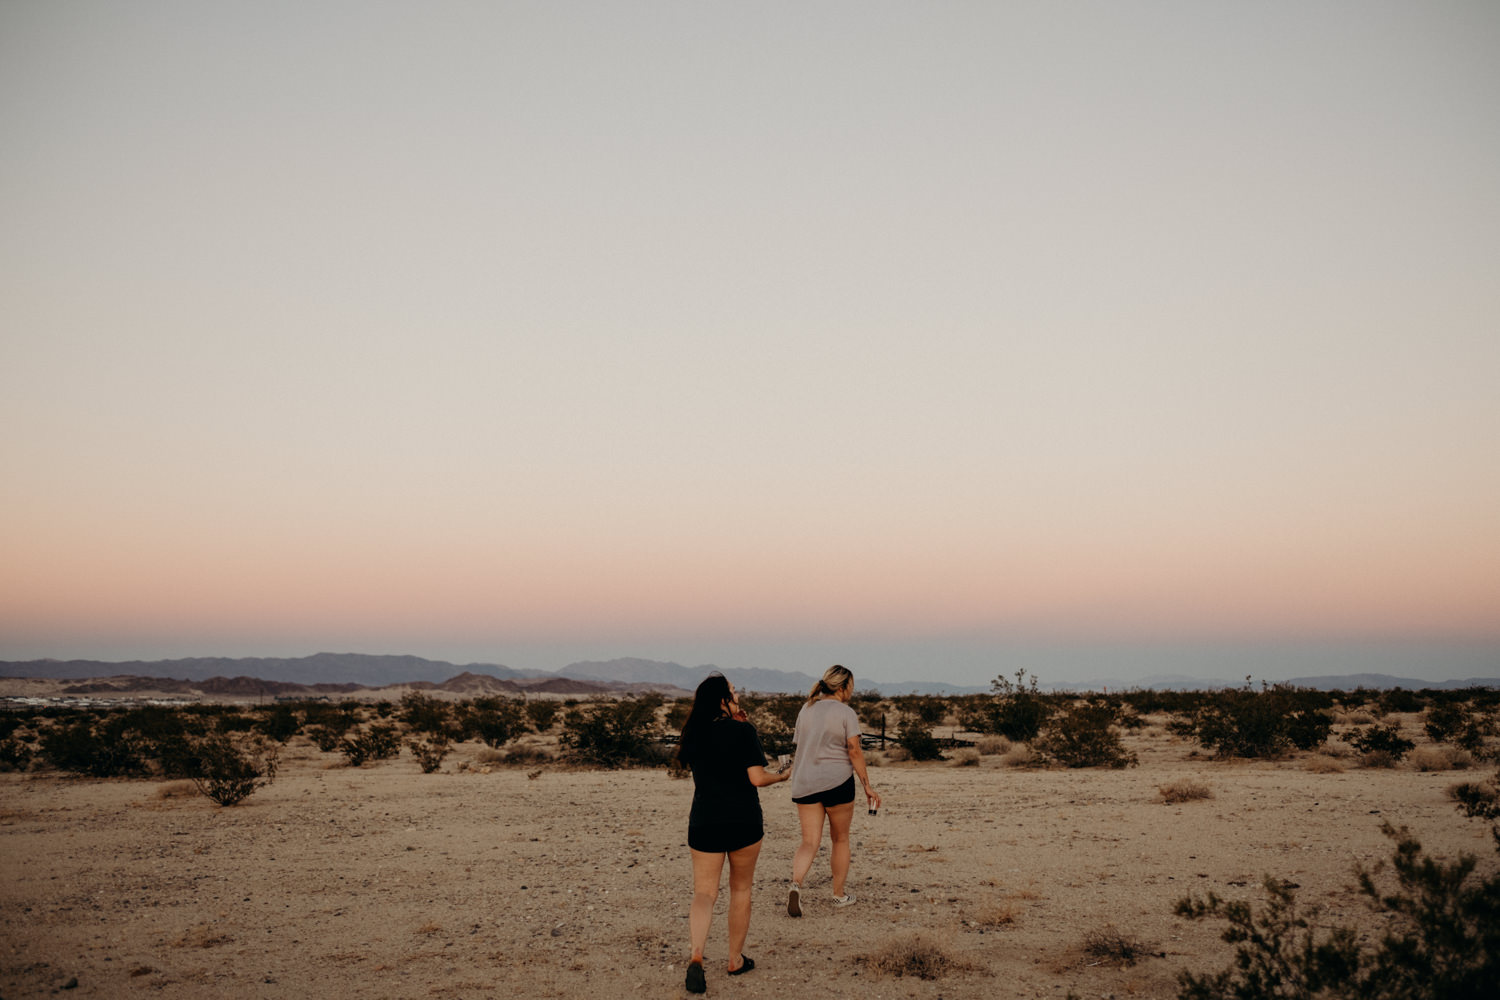 20180916_Joshua Tree Travel Guide_24.jpg